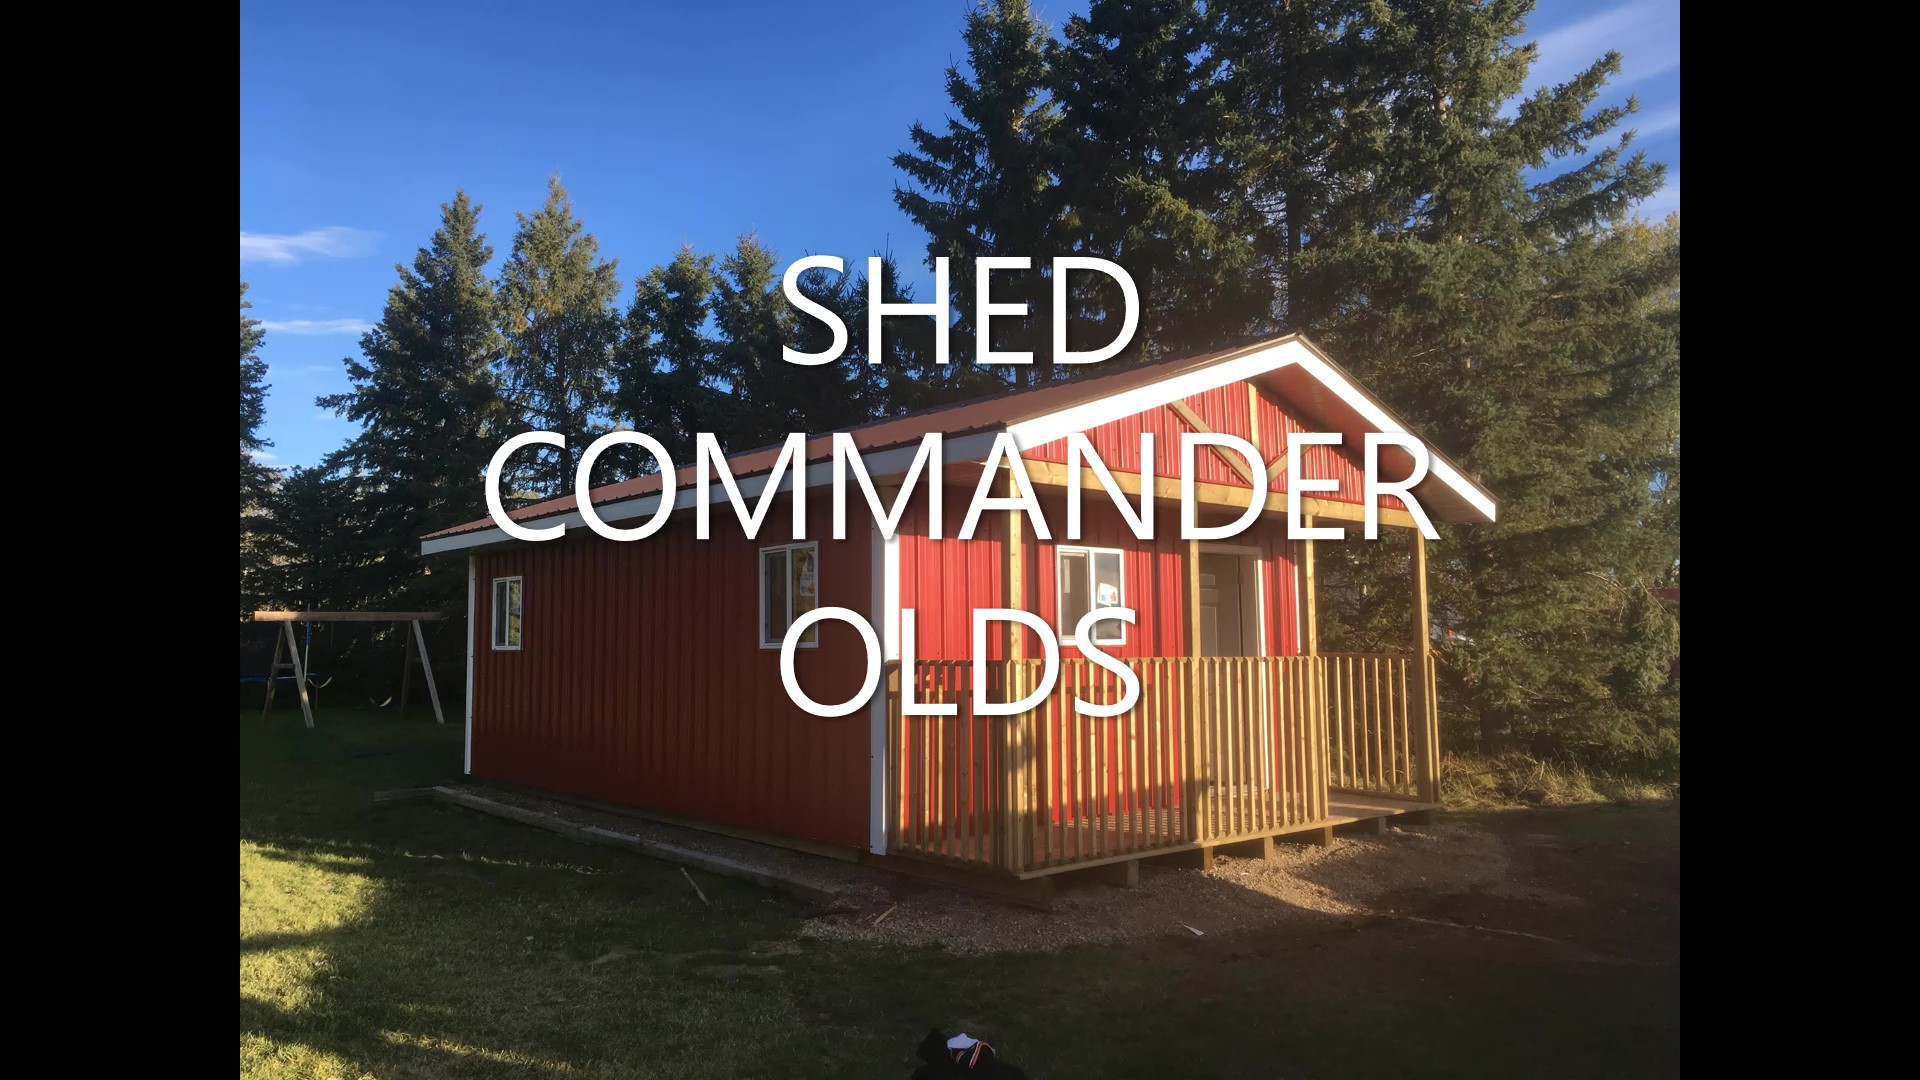 Shed Commander Ltd Olds